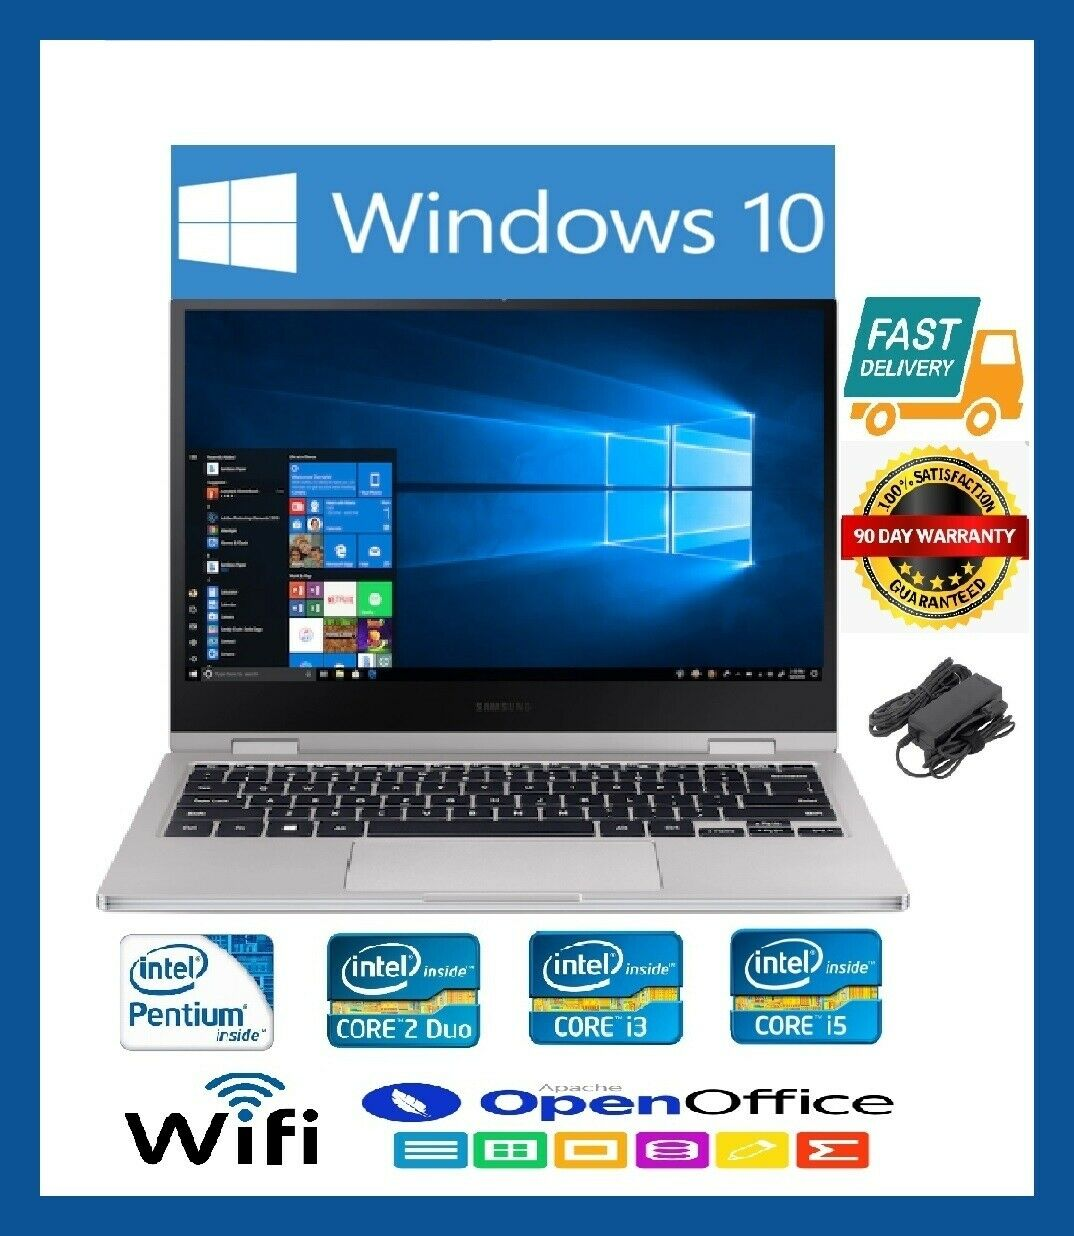 Laptop Windows - FAST CHEAP LAPTOP DELL HP TOSHIBA Core i3 i5 4GB 8GB RAM TB WiFi Win10 WARRANTY